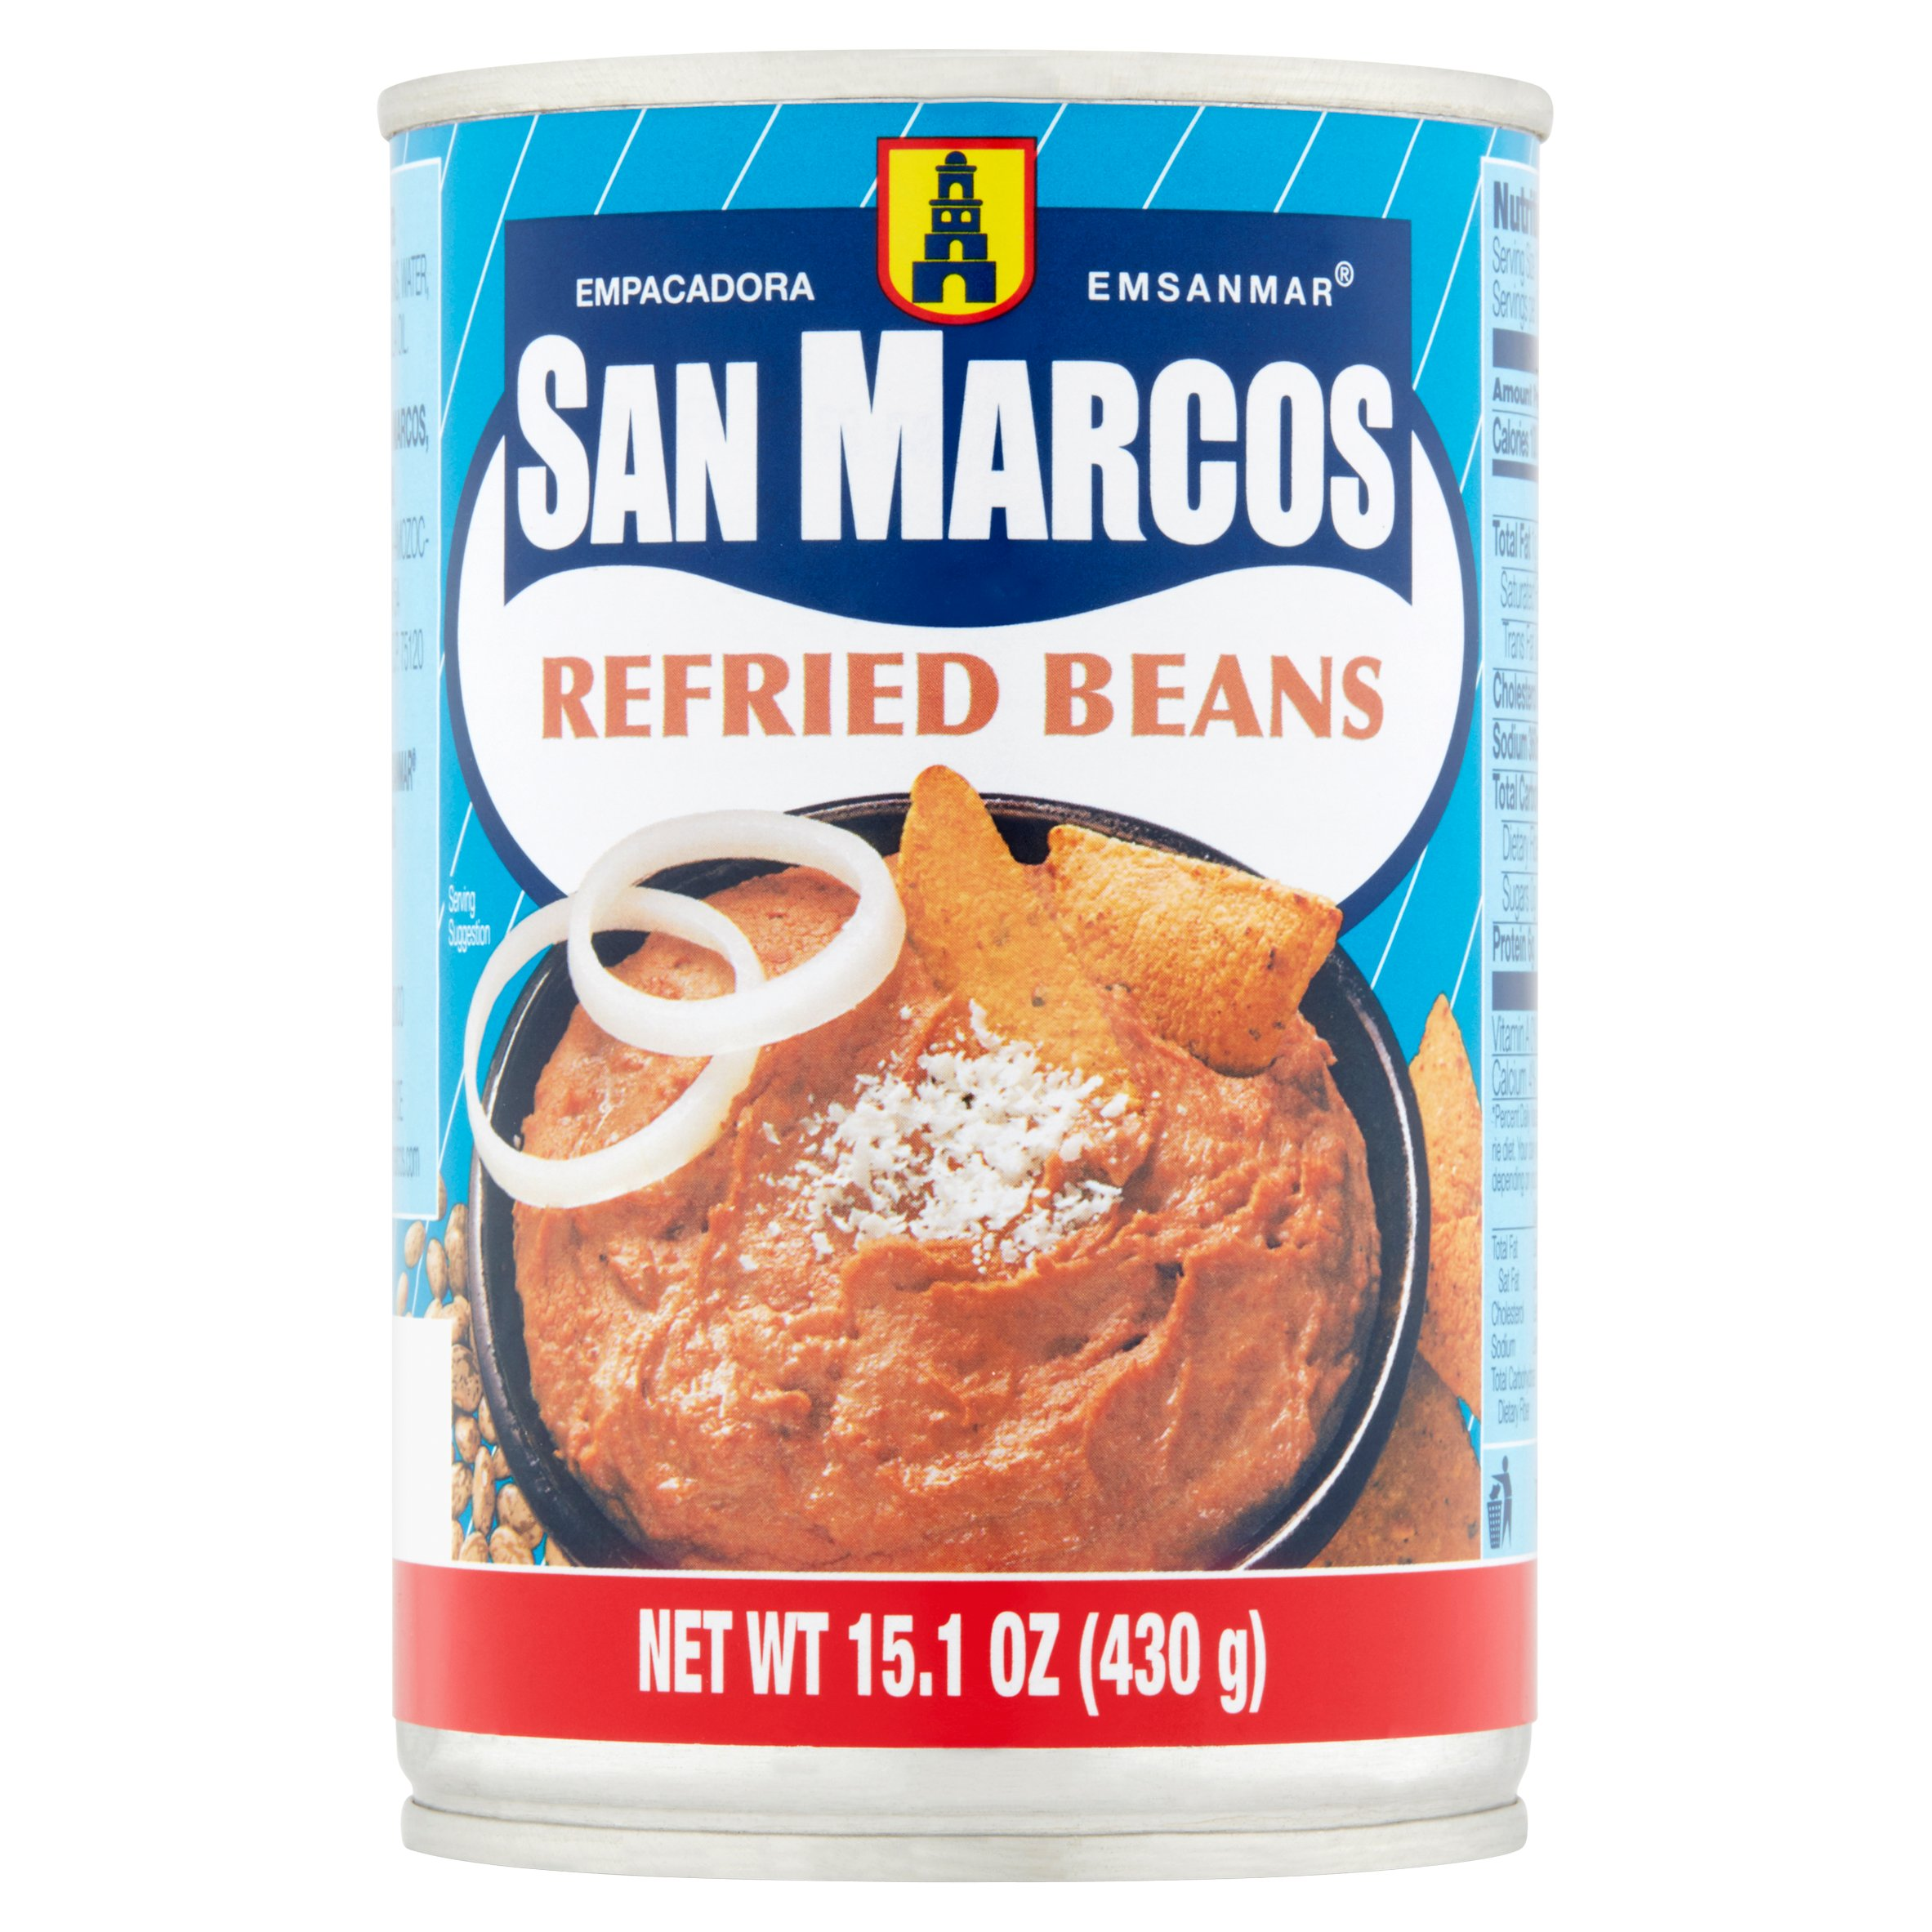 San Marcos Refried Beans, 15.1 Oz